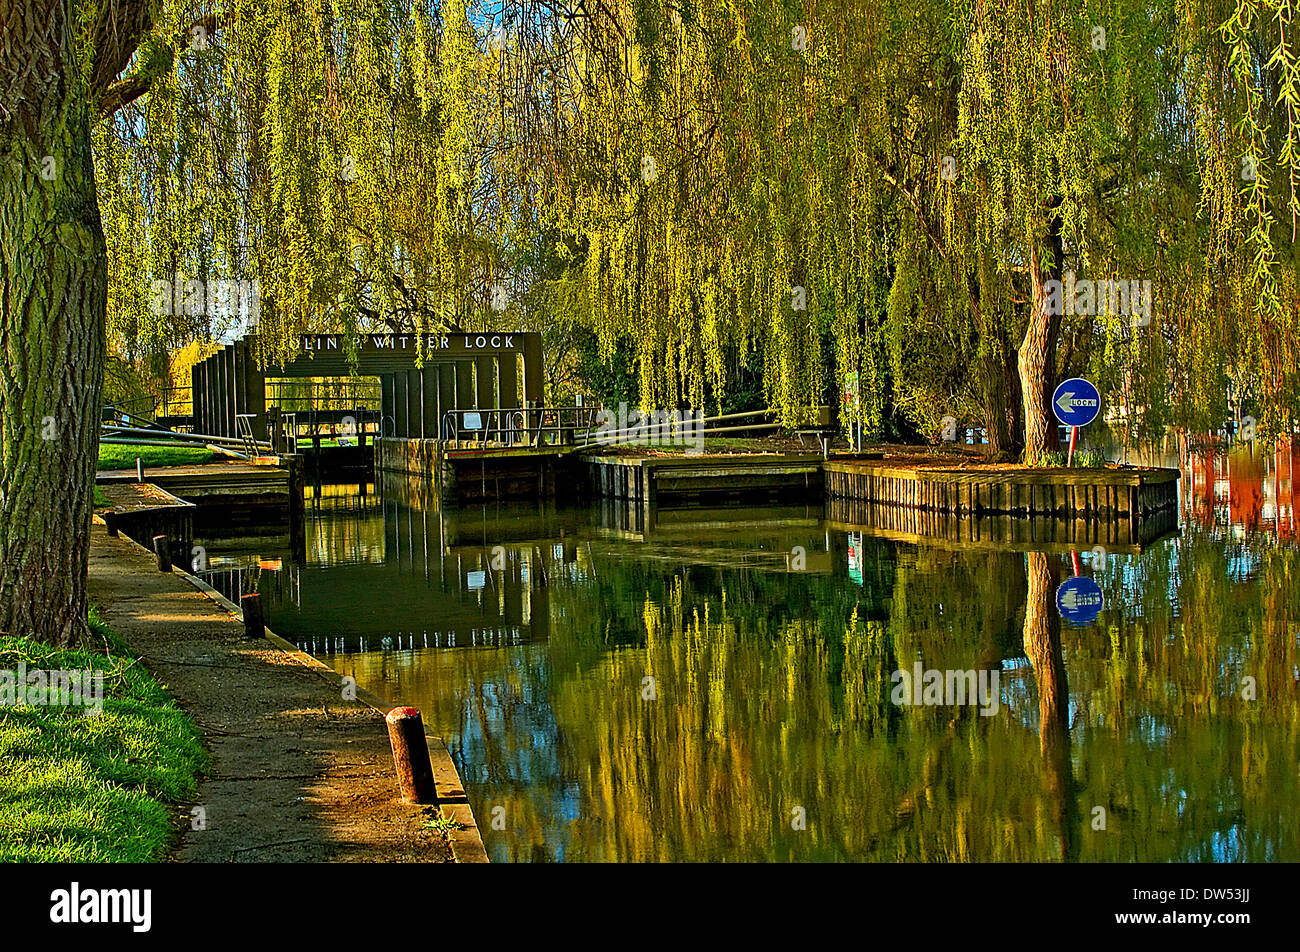 Colin P Witter lockgates on the River Avon at Stratford upon Avon is surrounded by willow trees. - Stock Image